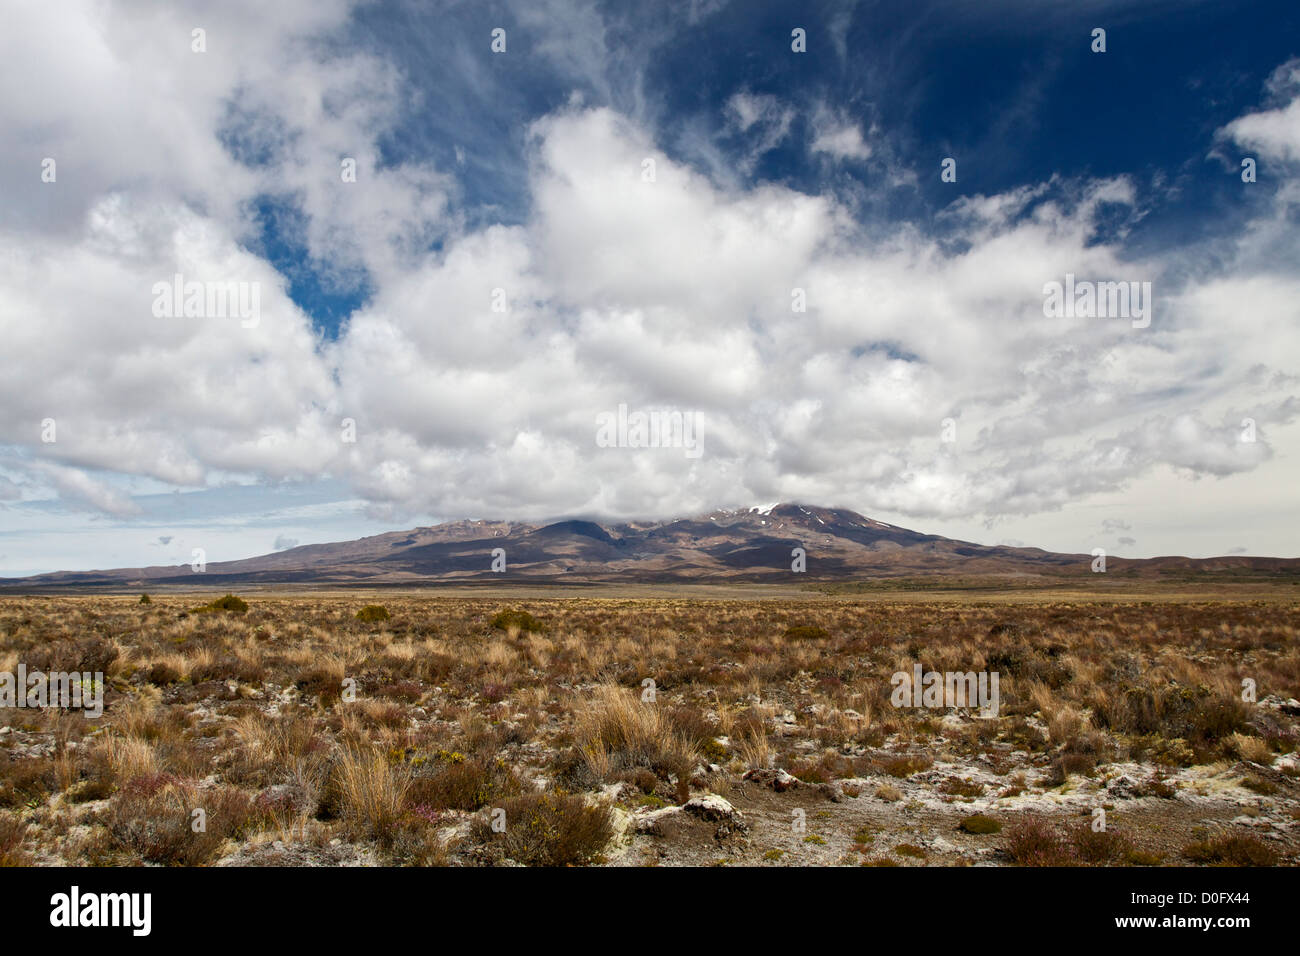 View of active volcano Mount Ruapehu, on the Central Plateau of the North Island, New Zealand. - Stock Image